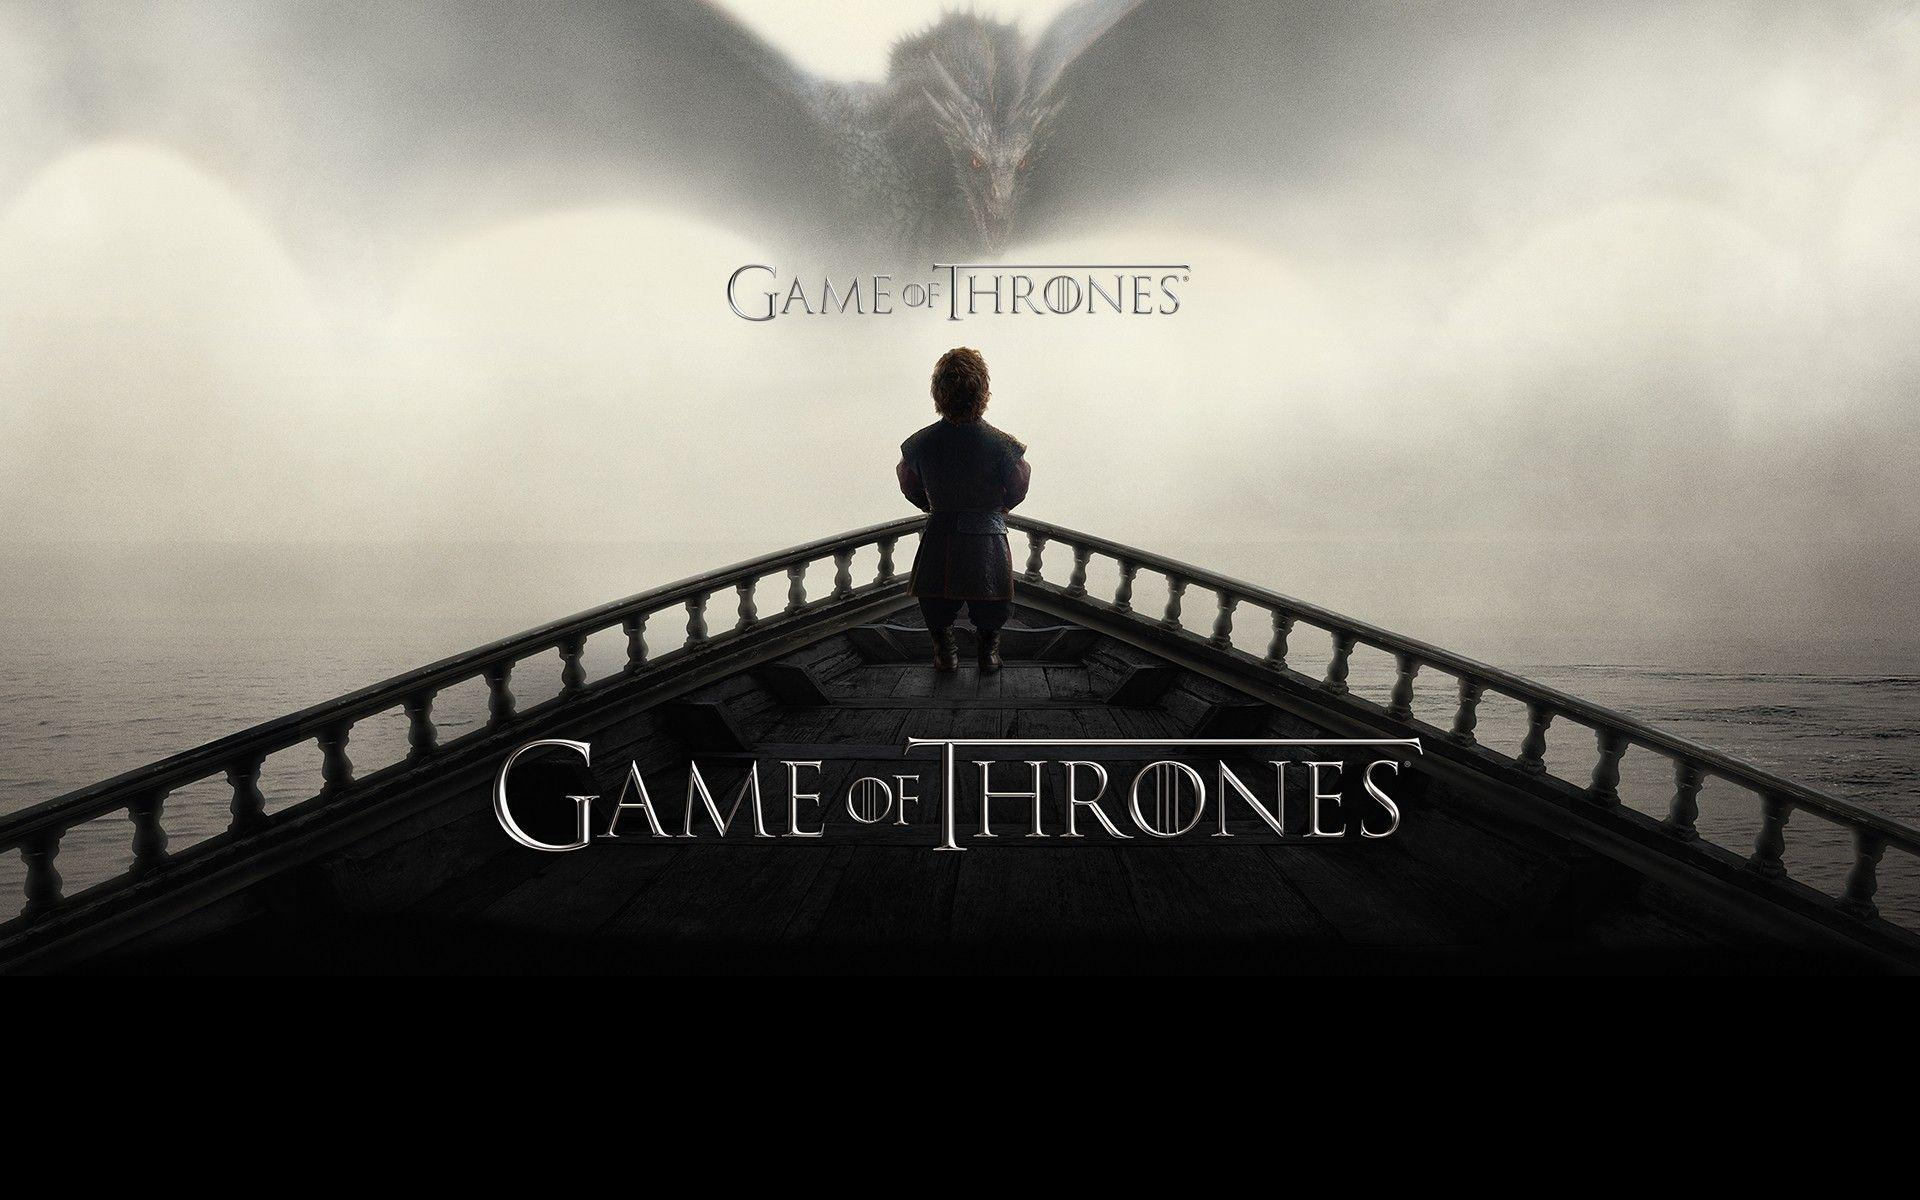 Game of Thrones wallpapers ·① Download free awesome HD wallpapers of